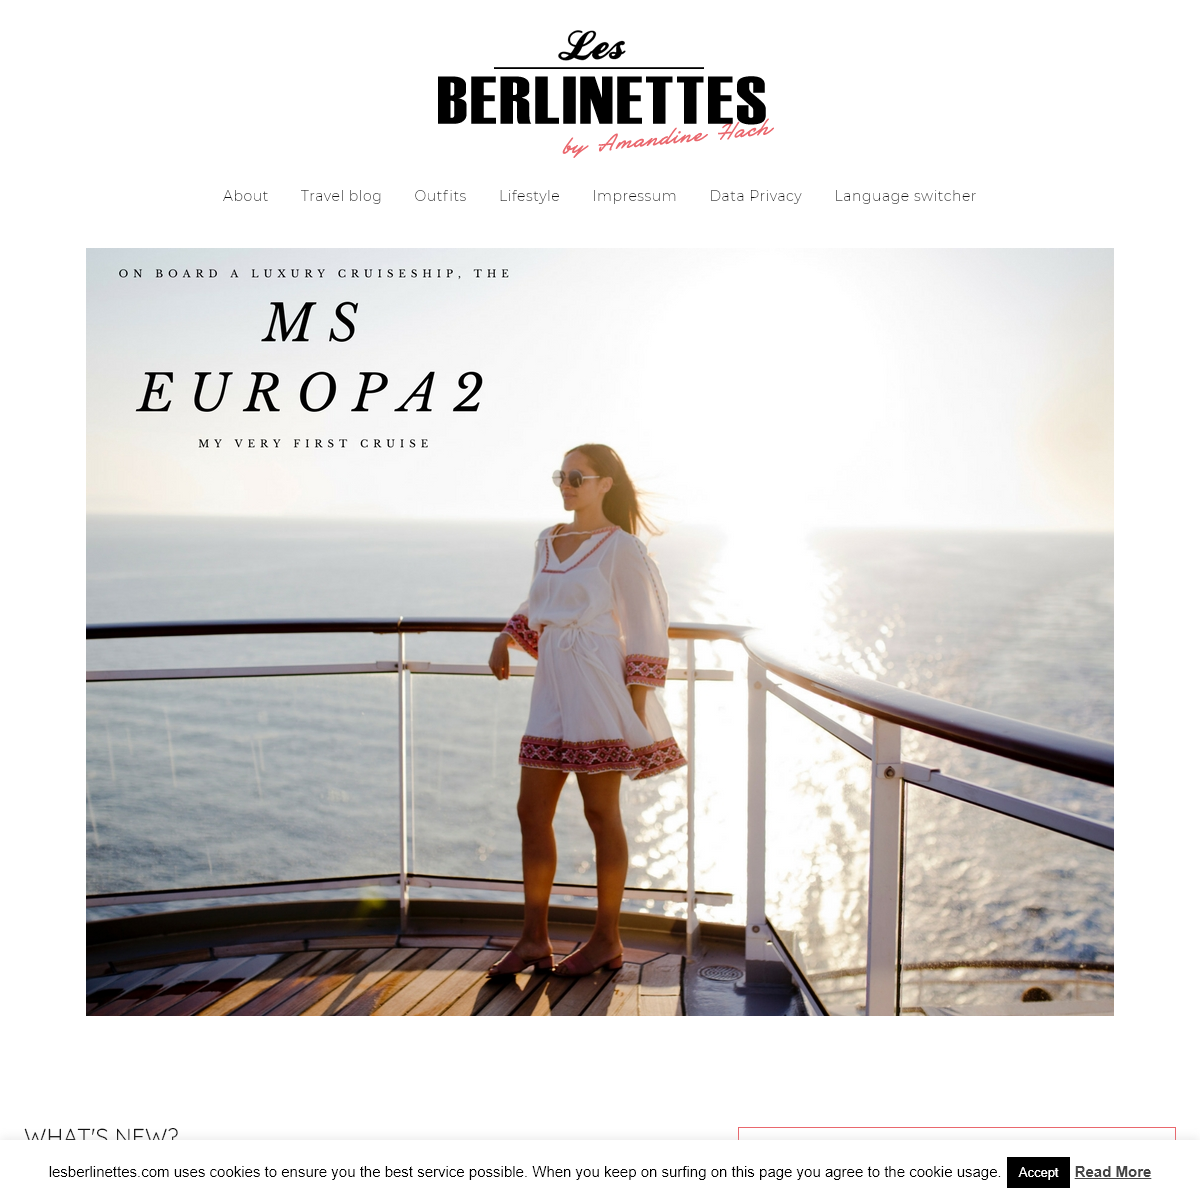 Les Berlinettes - Berlin lifestyle, fashion and travel blog